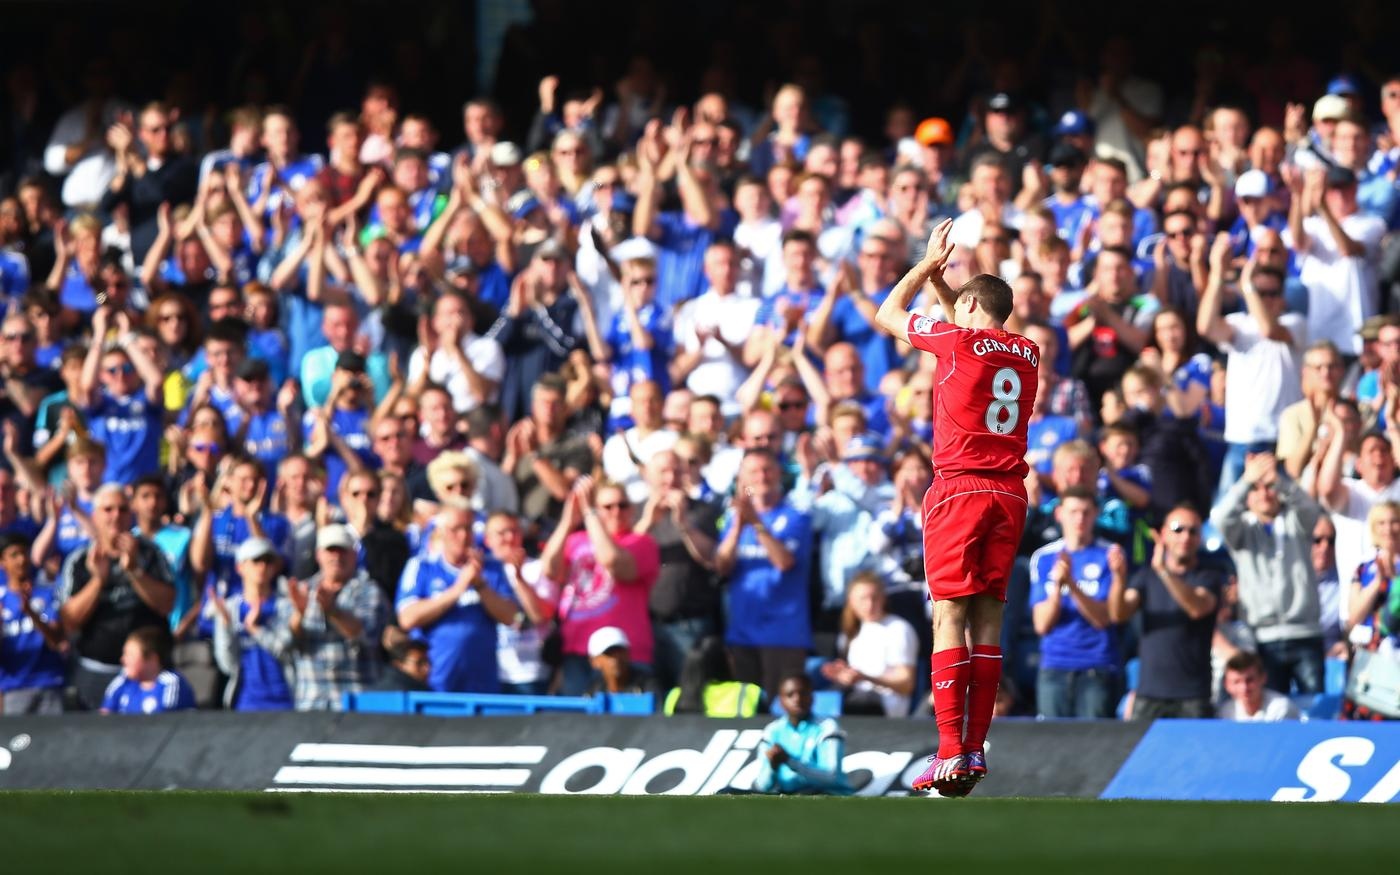 Standing ovation? Liverpool's Steven Gerrard couldn't care less what the Chelsea fans do